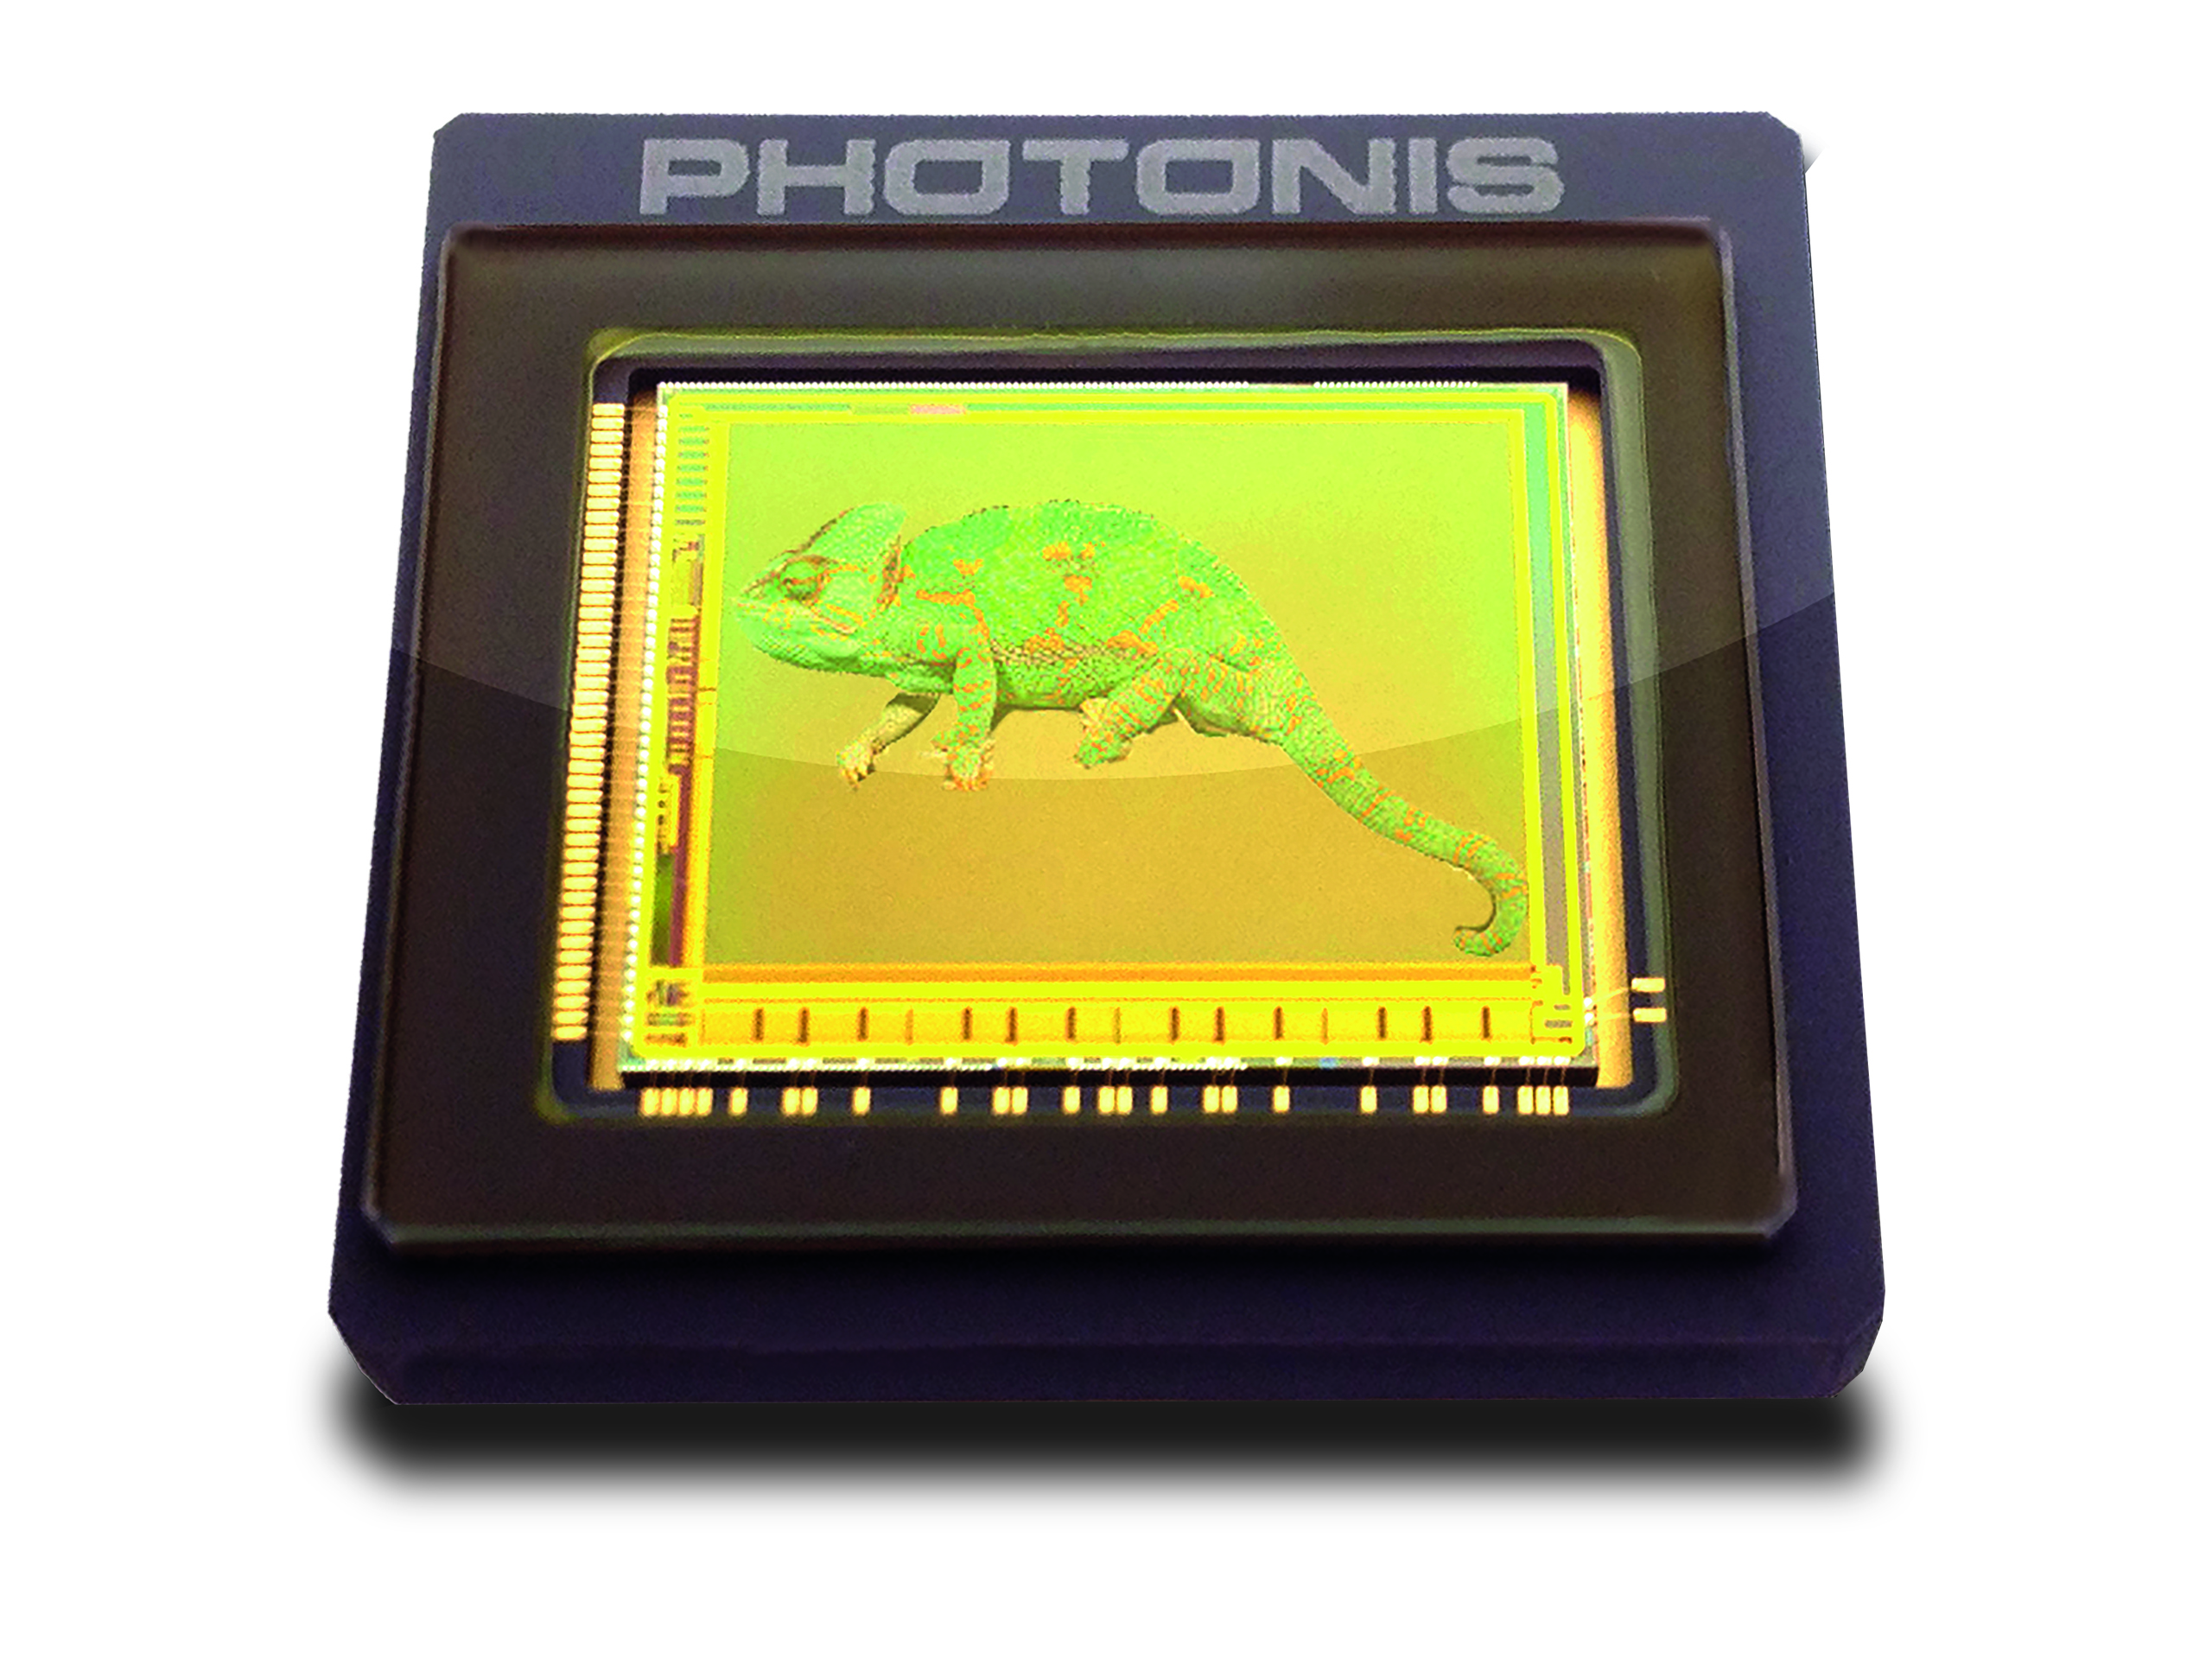 low-light level imaging Kameleon CMOS Sensor